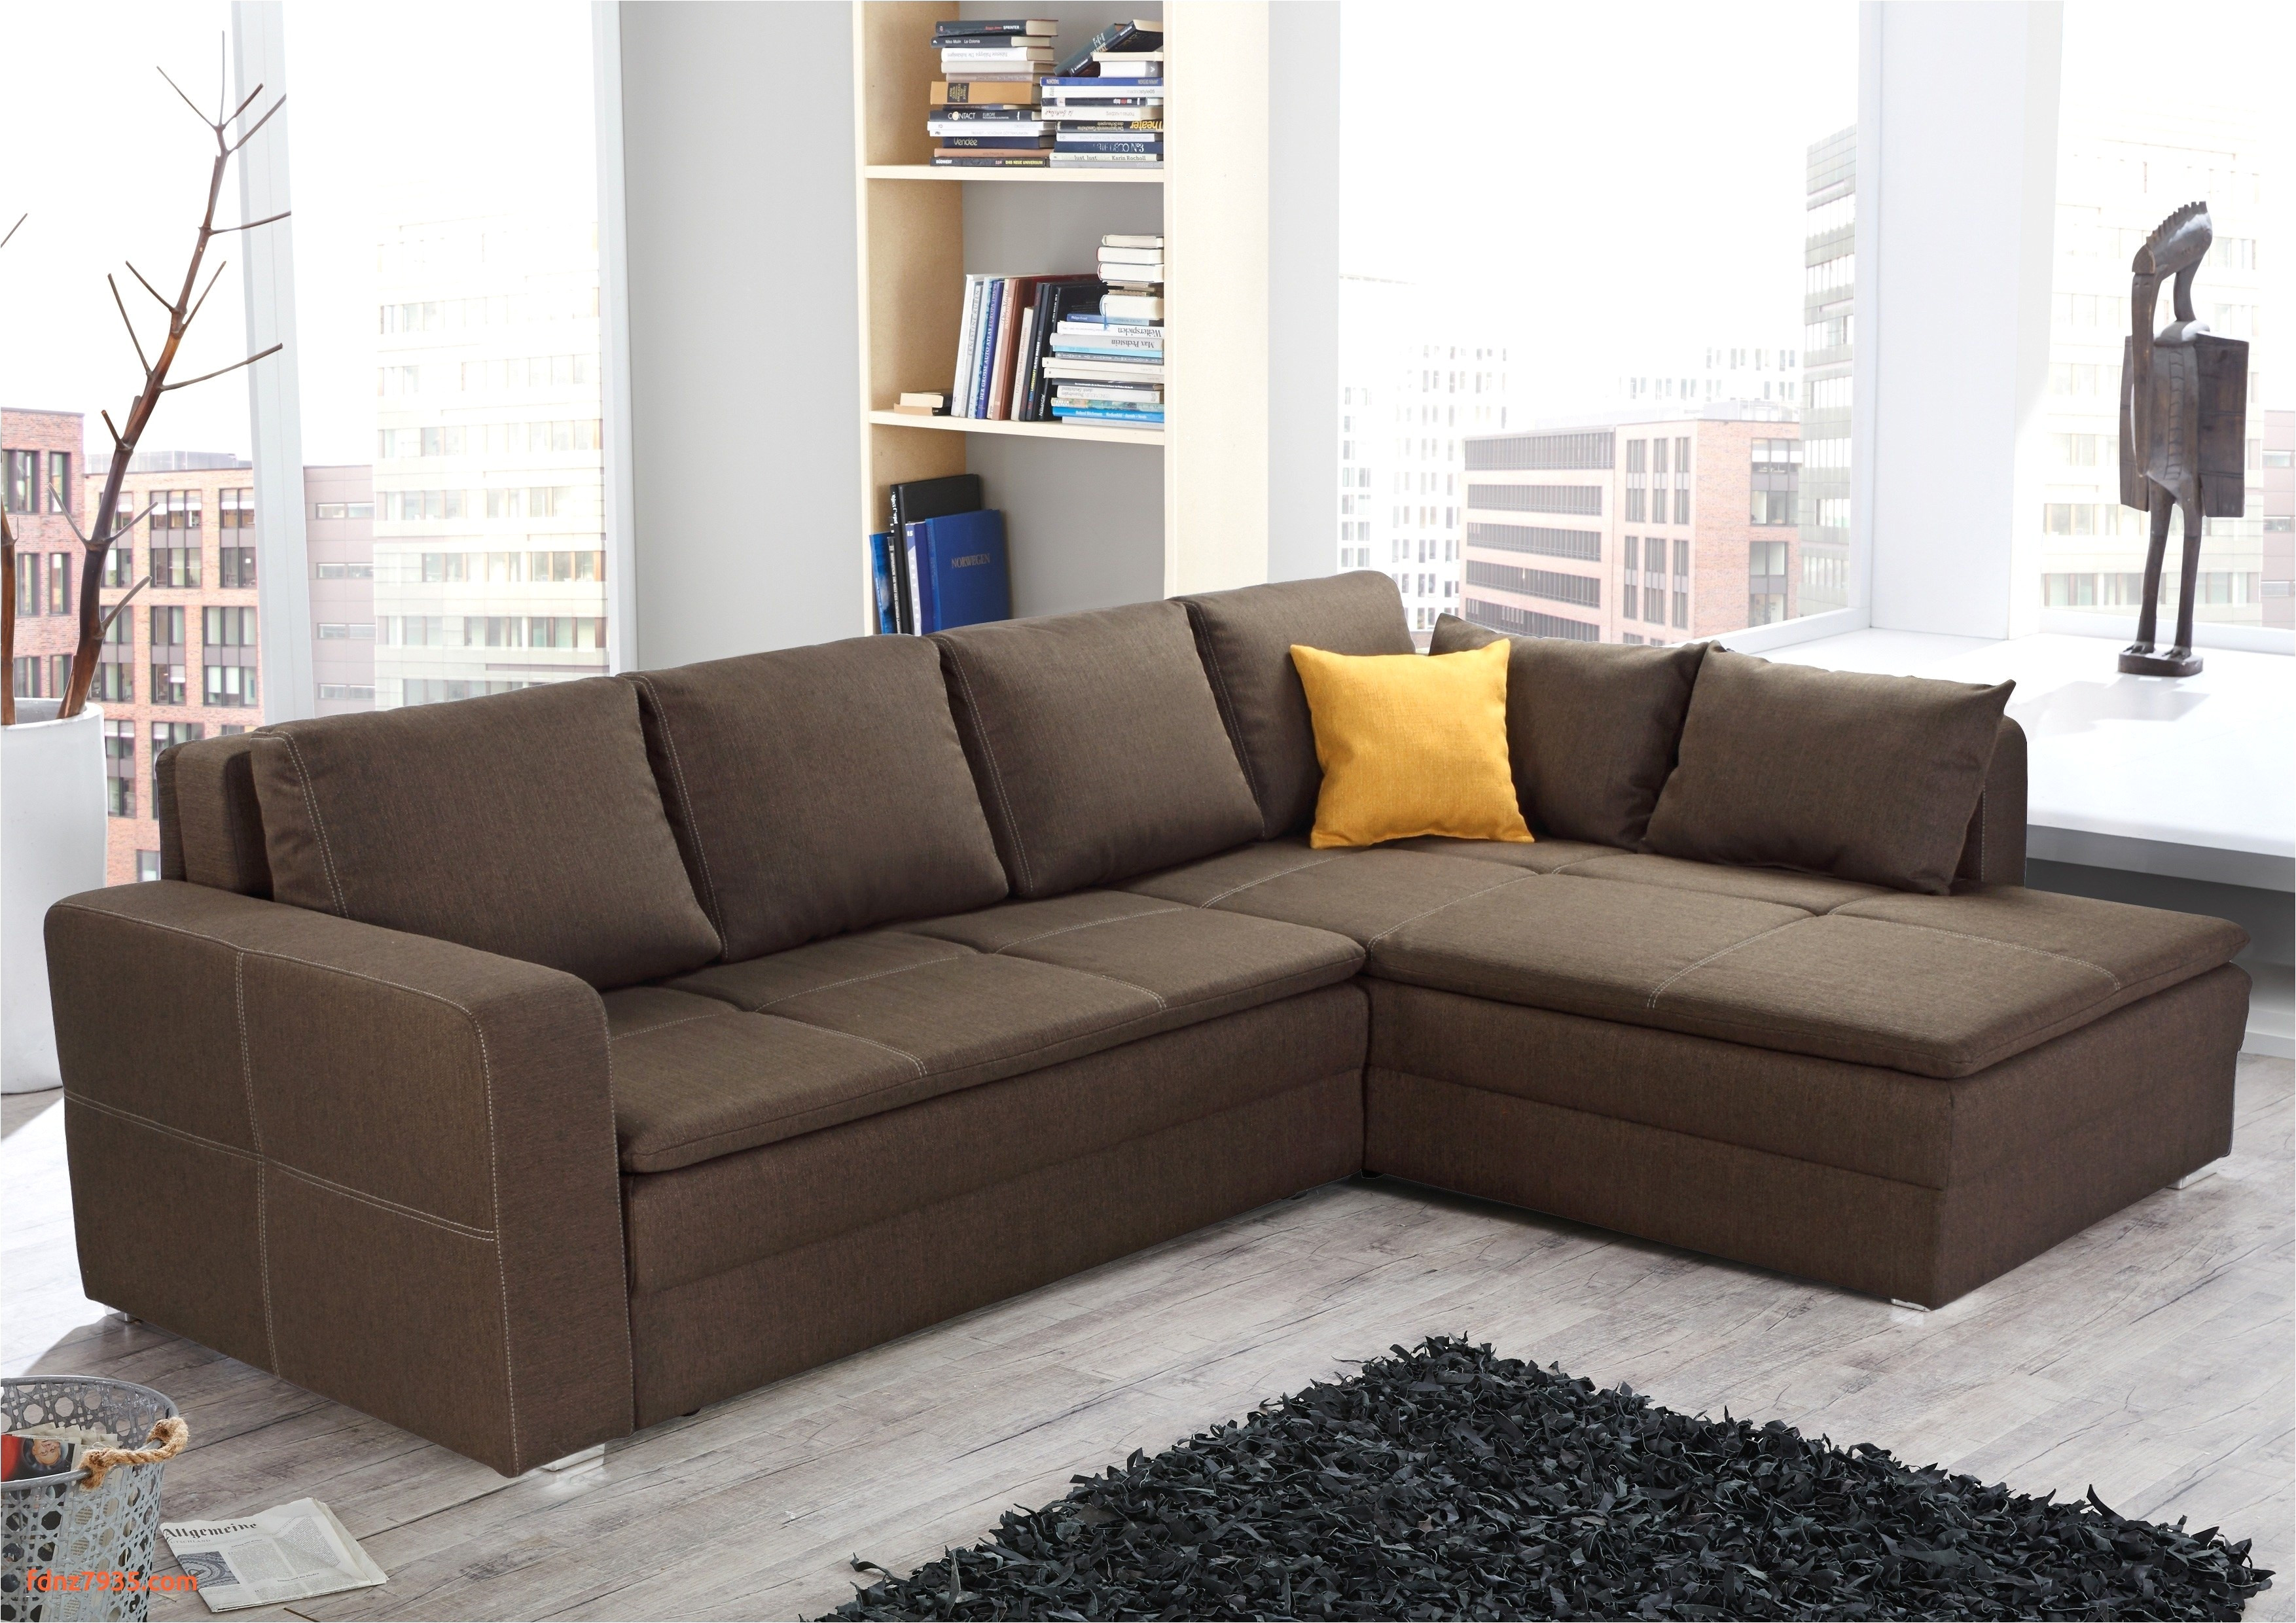 gunstige sofa macys furniture 0d archives modern house ideas and sectional sofa with sleeper bed for